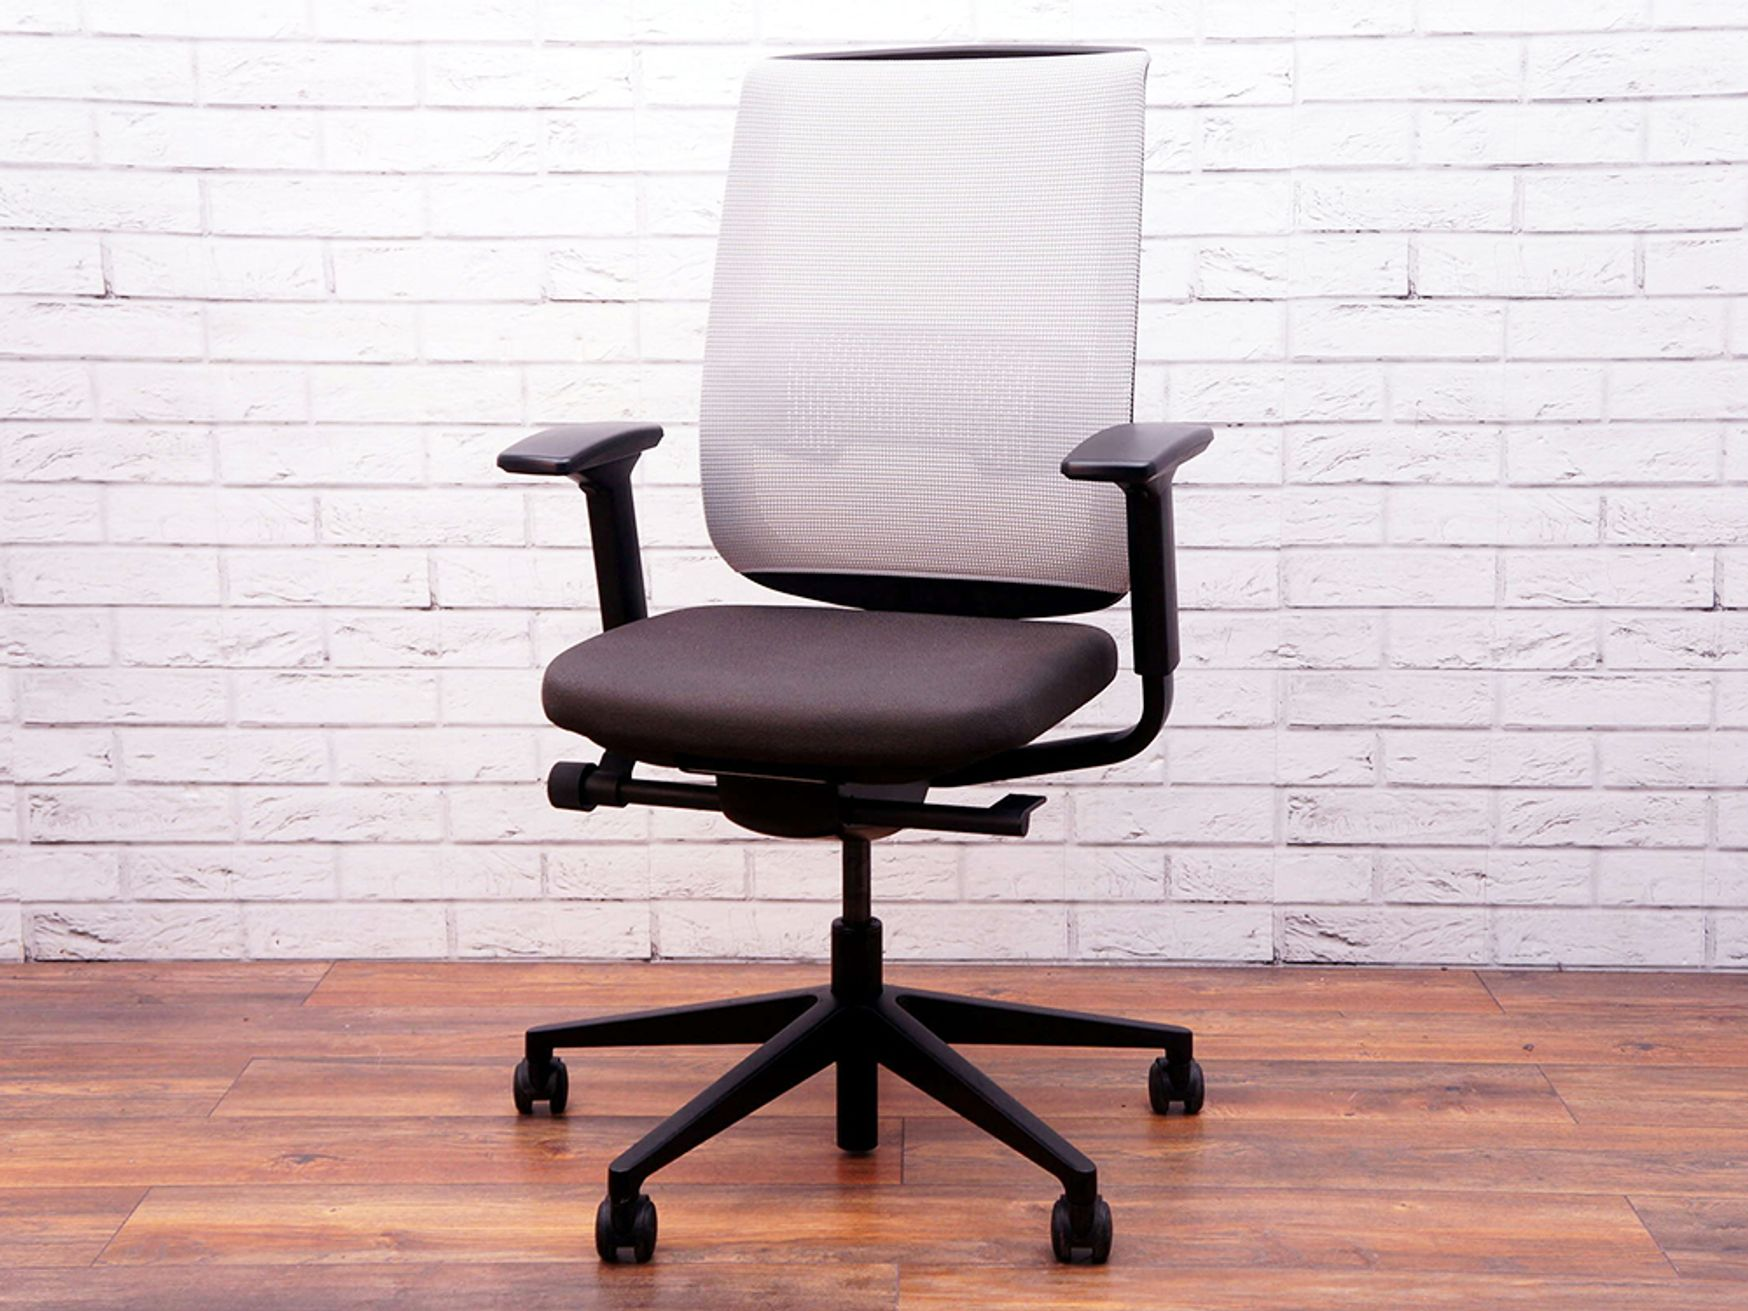 Used Steelcase Reply with lumbar support